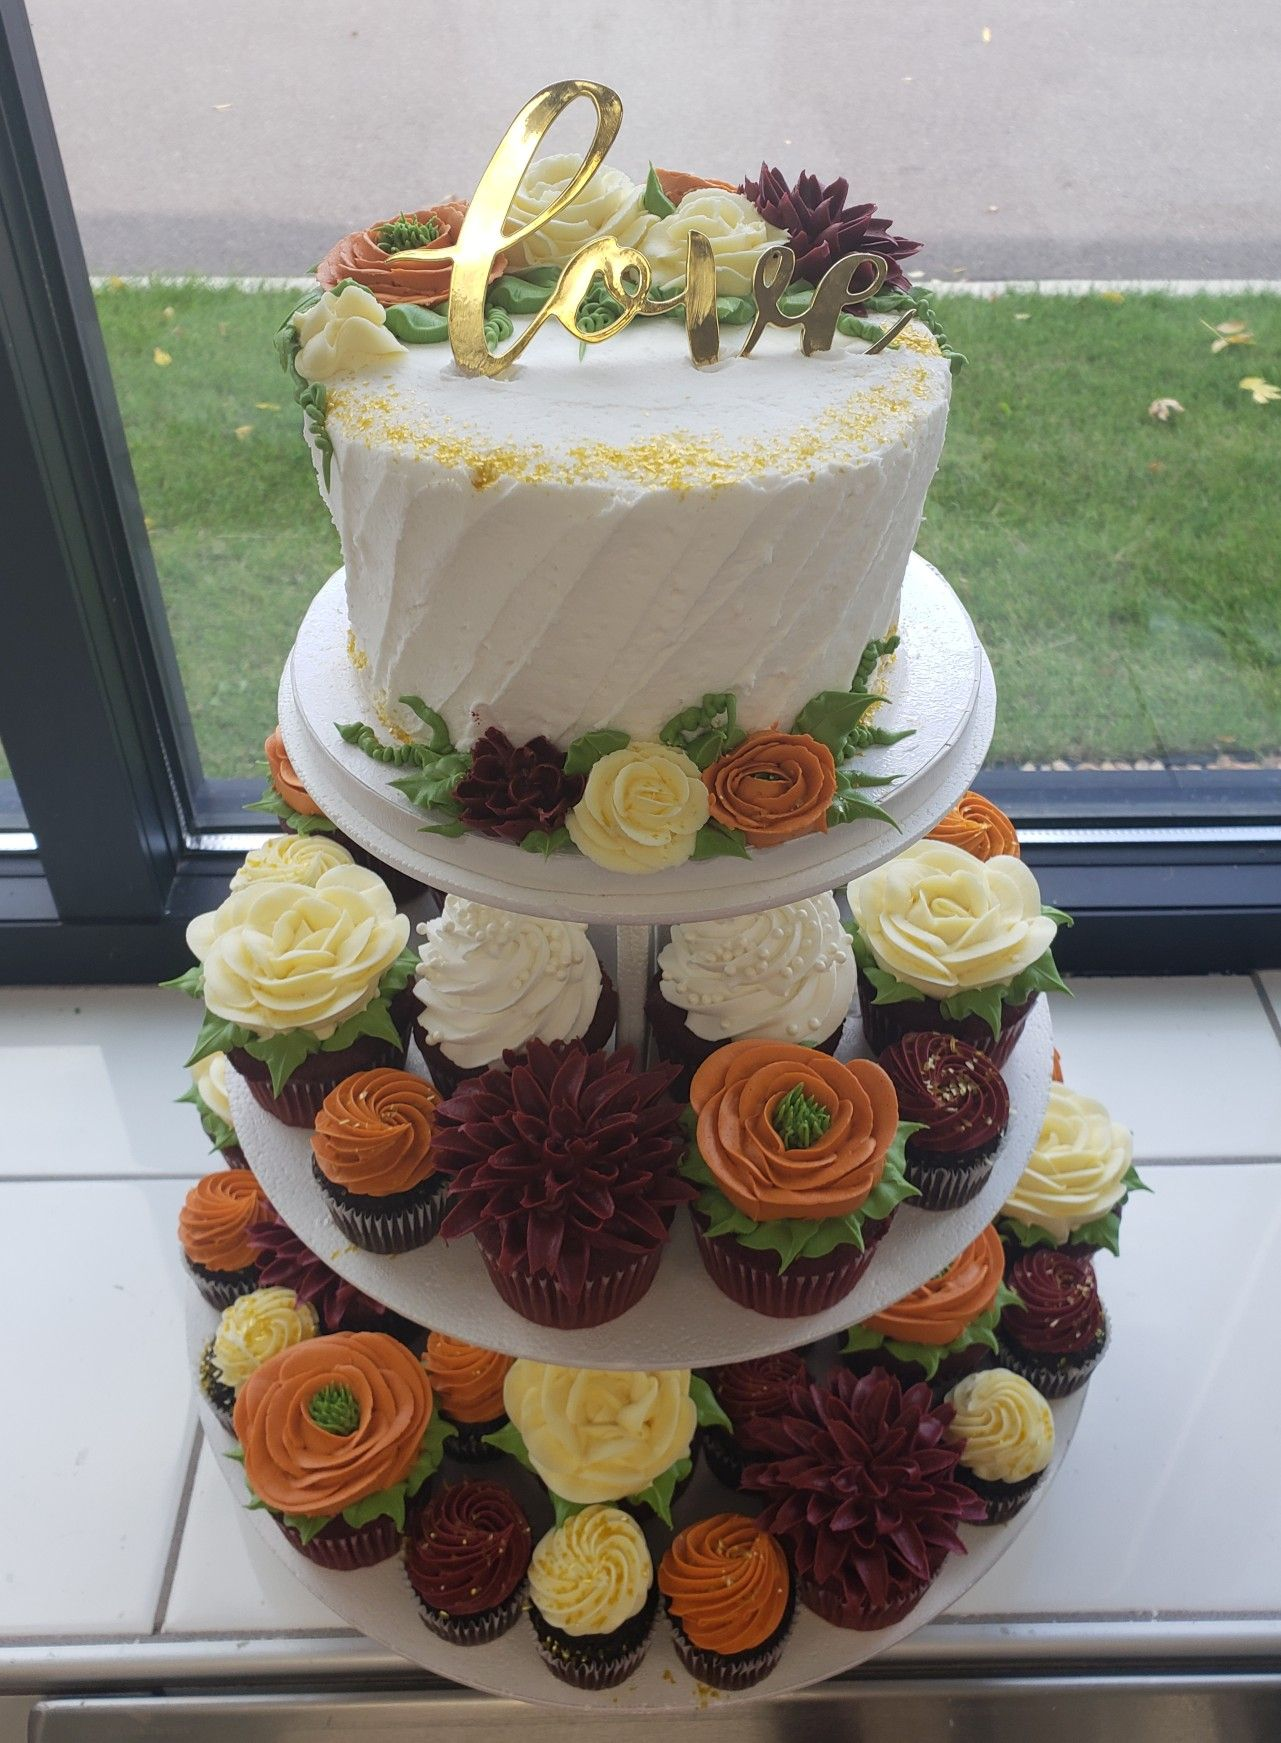 Pin by Lynne Sutch on My Cakes! Publix bakery, Fall